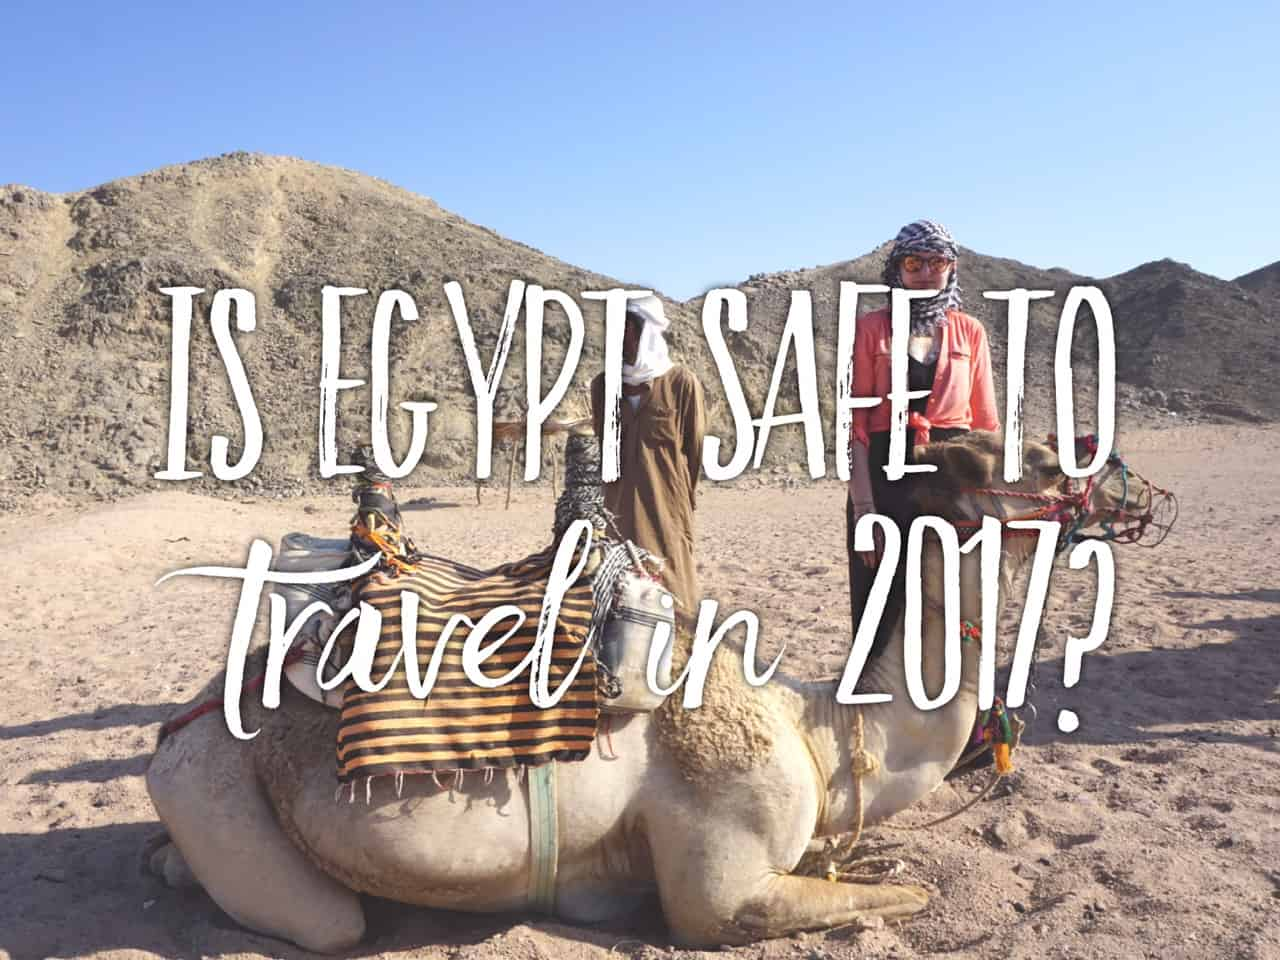 Is it safe to travel to Egypt in 2018? Our holidays in Egypt